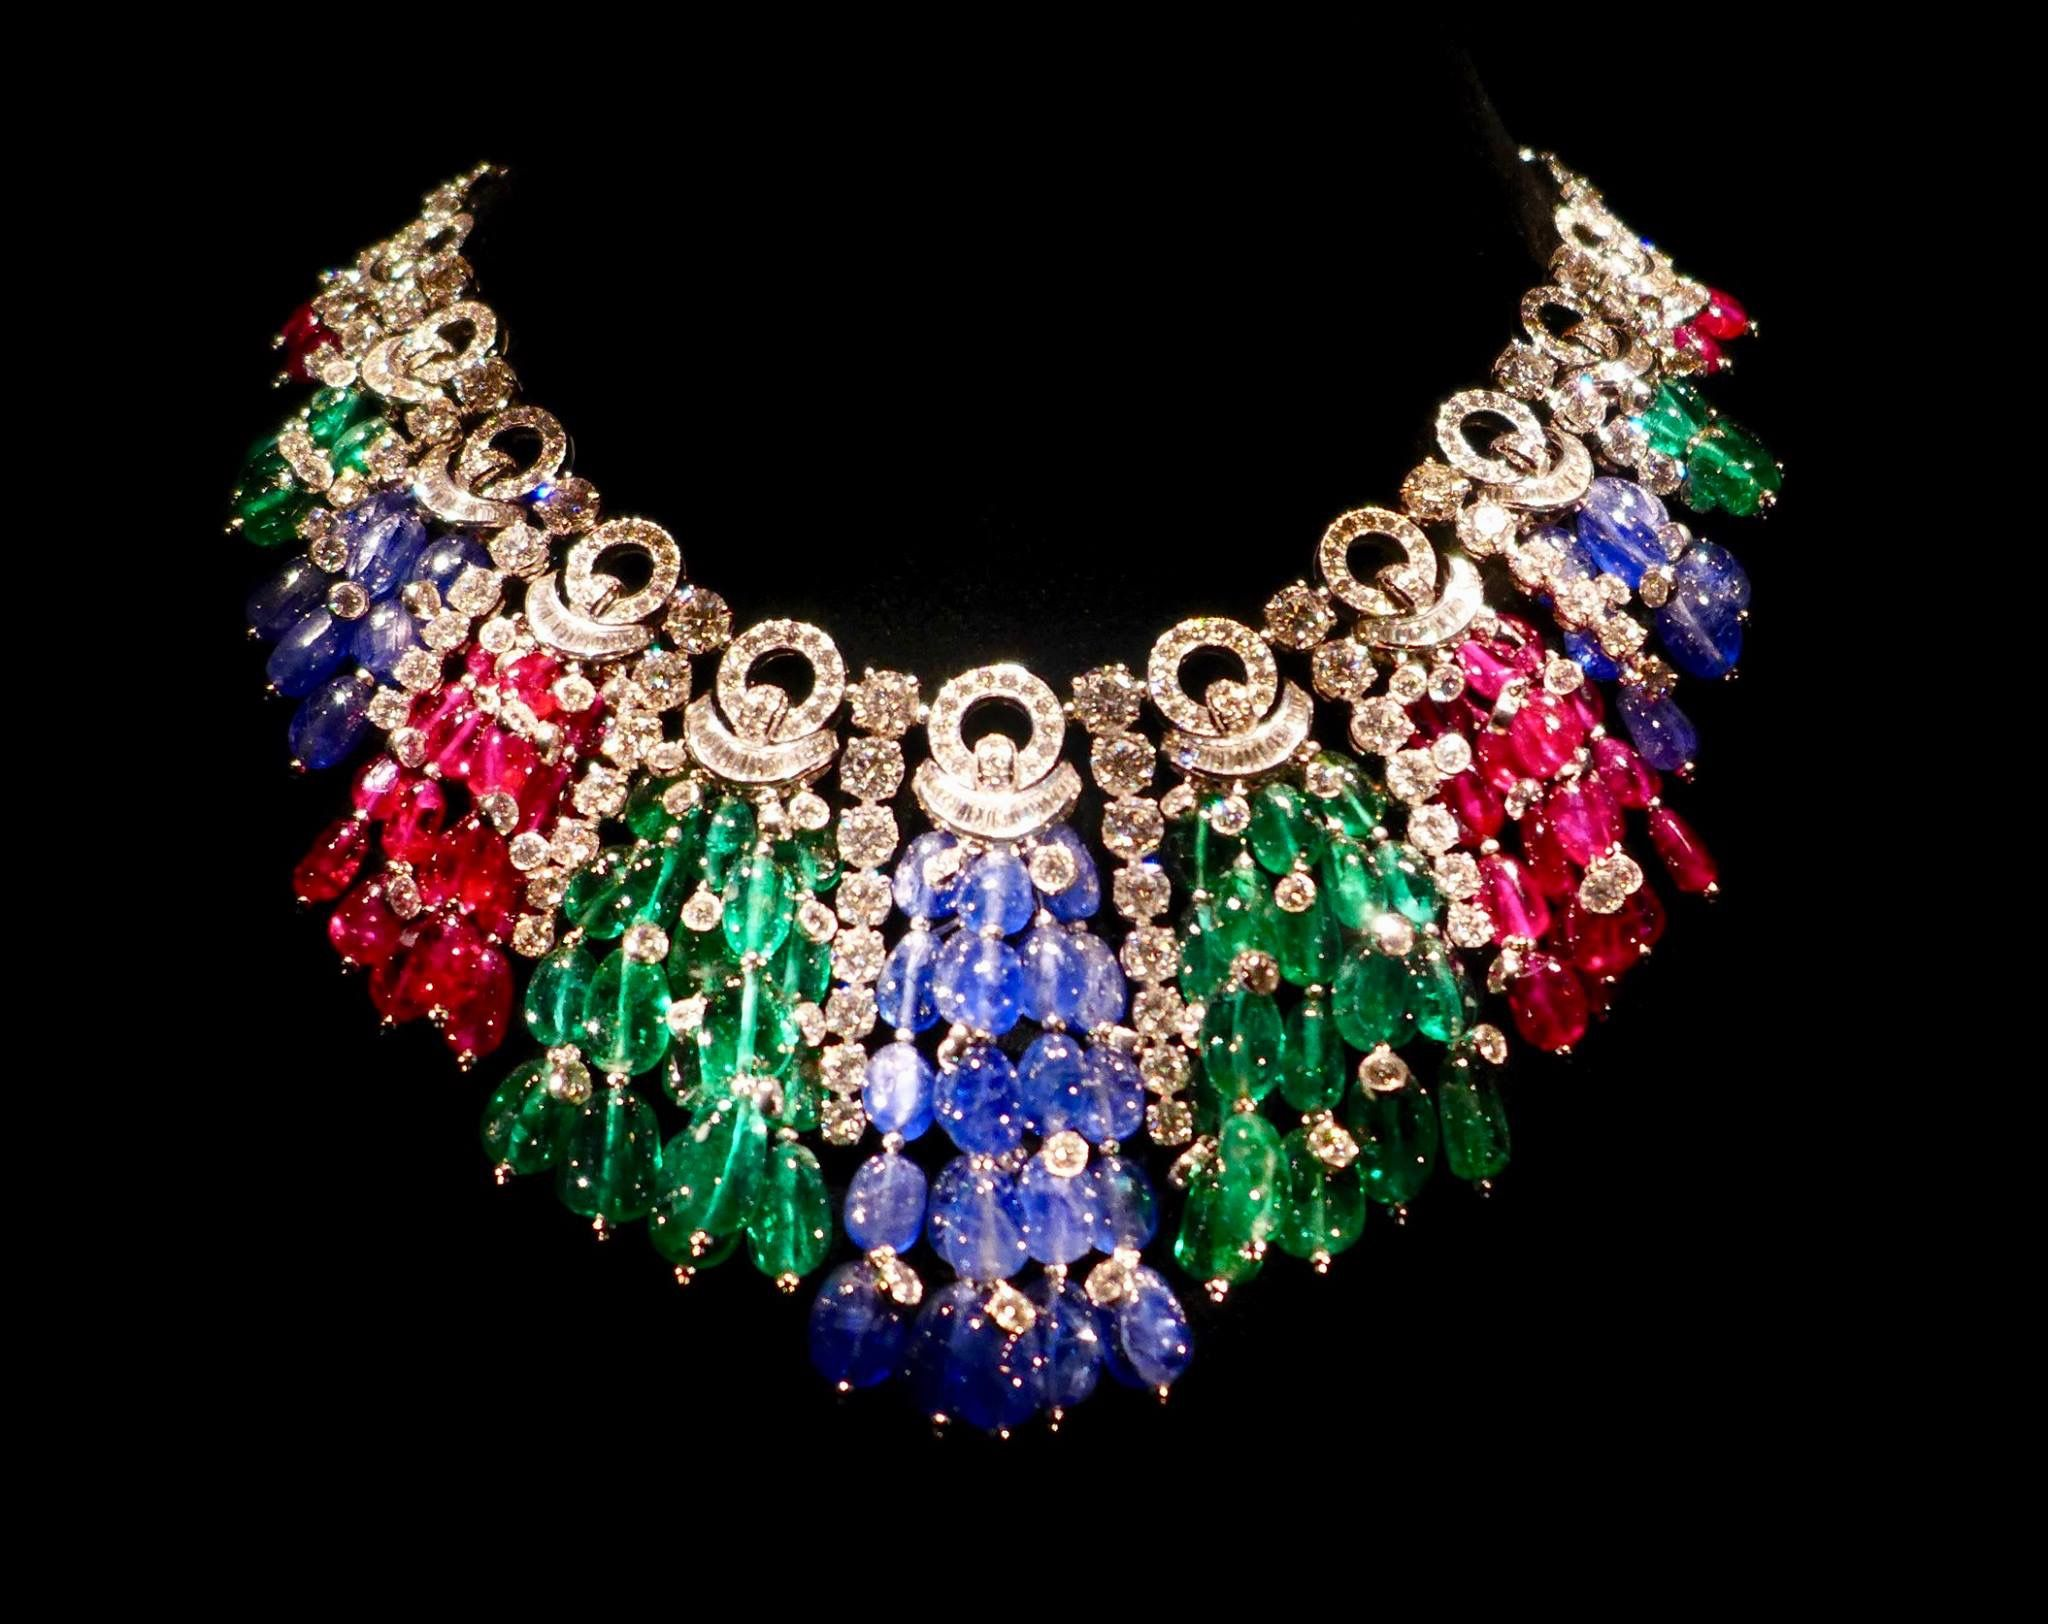 Bvlgari necklace created in 2011 comprising gold (white) emeralds, sapphires, rubies and diamonds. <3 D'Artagnan.